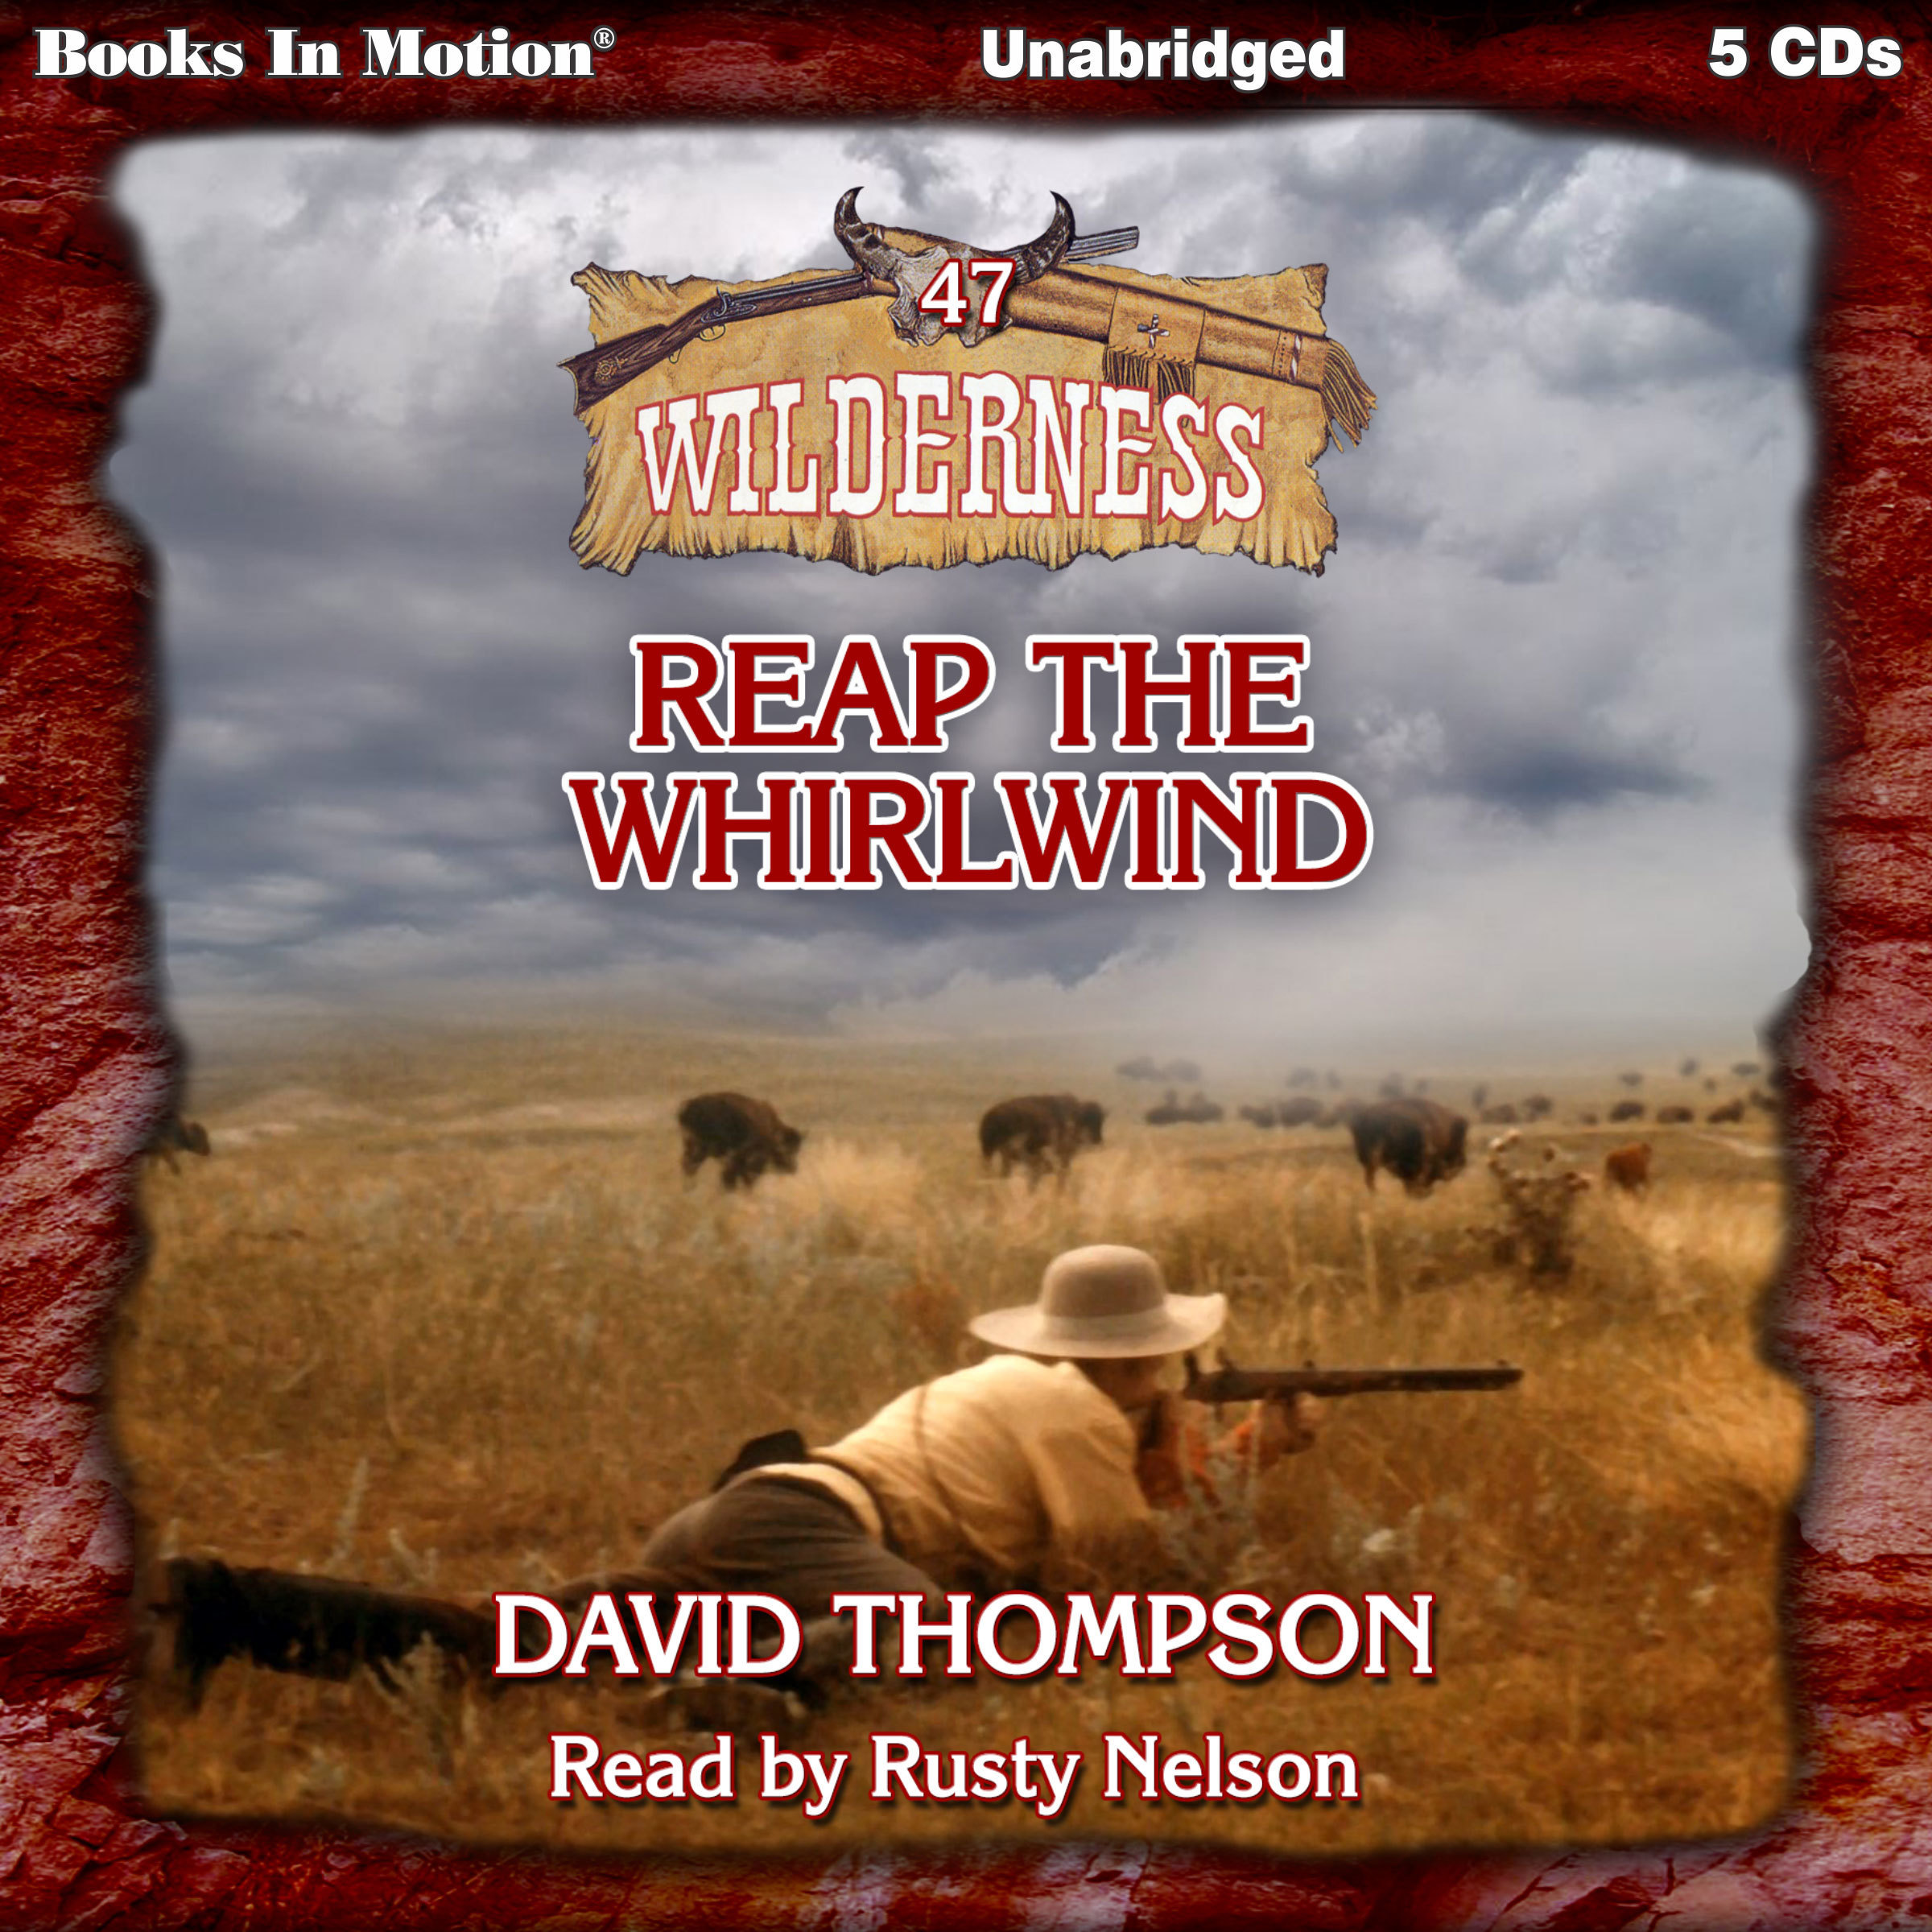 Printable Reap The Whirlwind (Wilderness Series, Book 47) Audiobook Cover Art